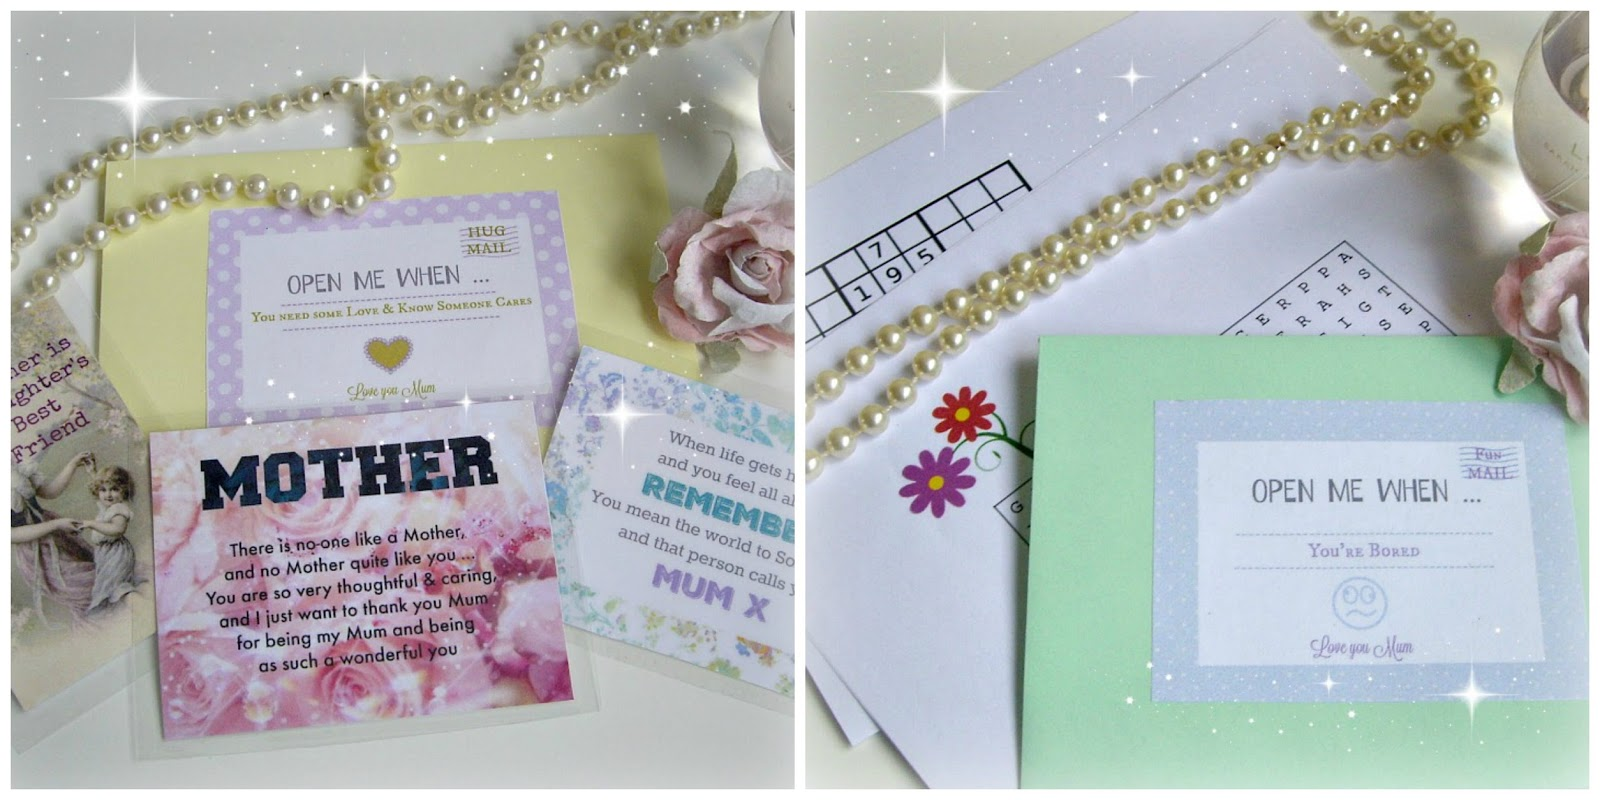 Here we have an envelope for when Mum needs to know someone cares plete with quote cards to let her know how much you love her you can also pop in a